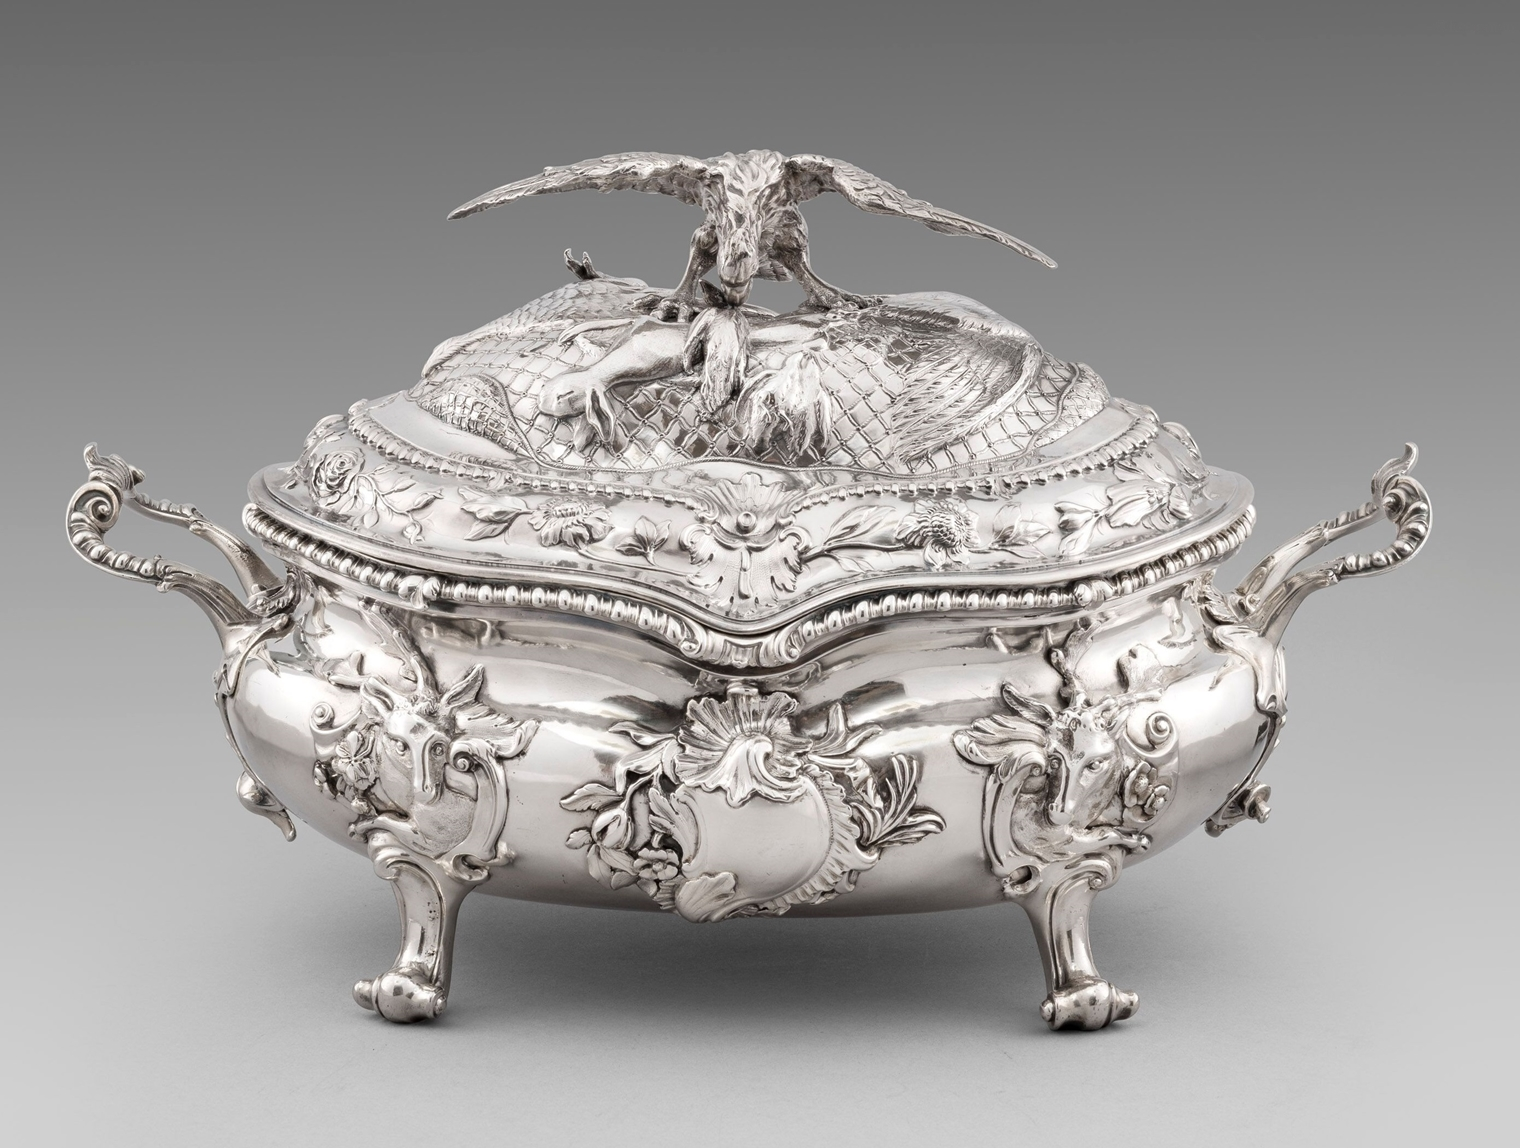 An Important George III Soup Tureen